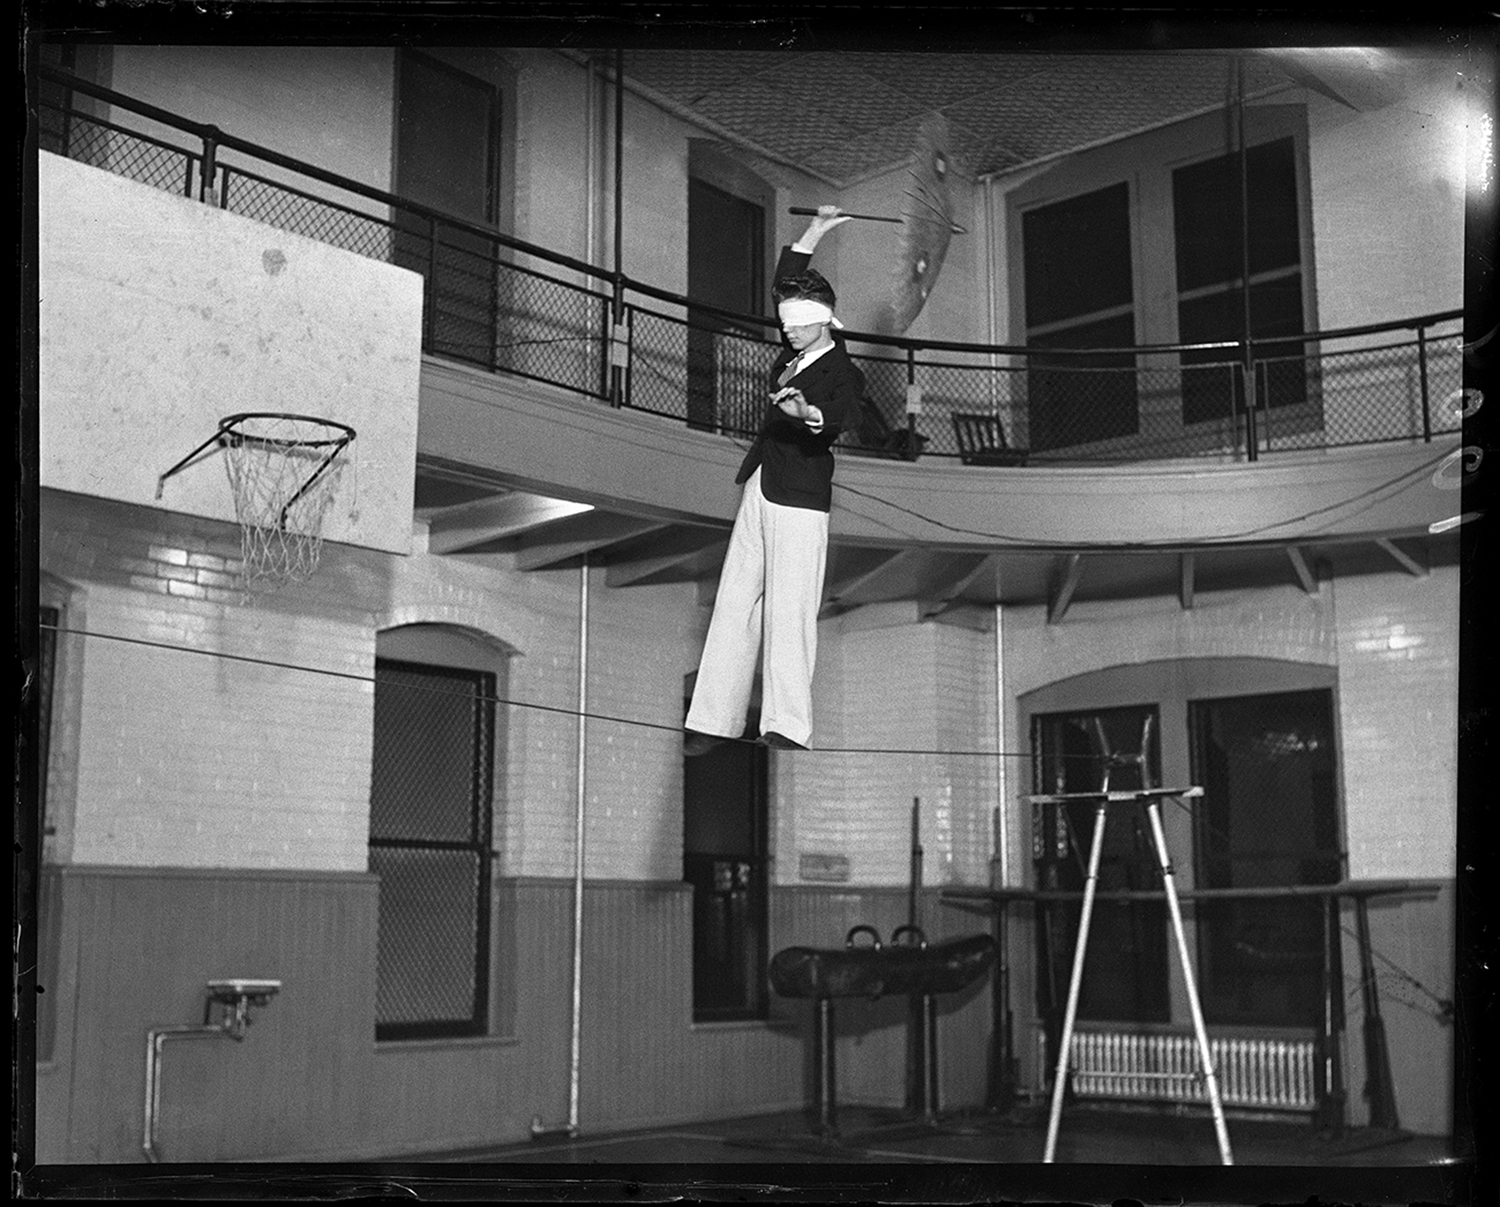 """Joe Imlay, instructor and tight wire enthusiast at the Y.M.C.A, practices for the """"Y"""" Circus at the Illinois State Arsenal, circa 1931. File/The State Journal-Register"""